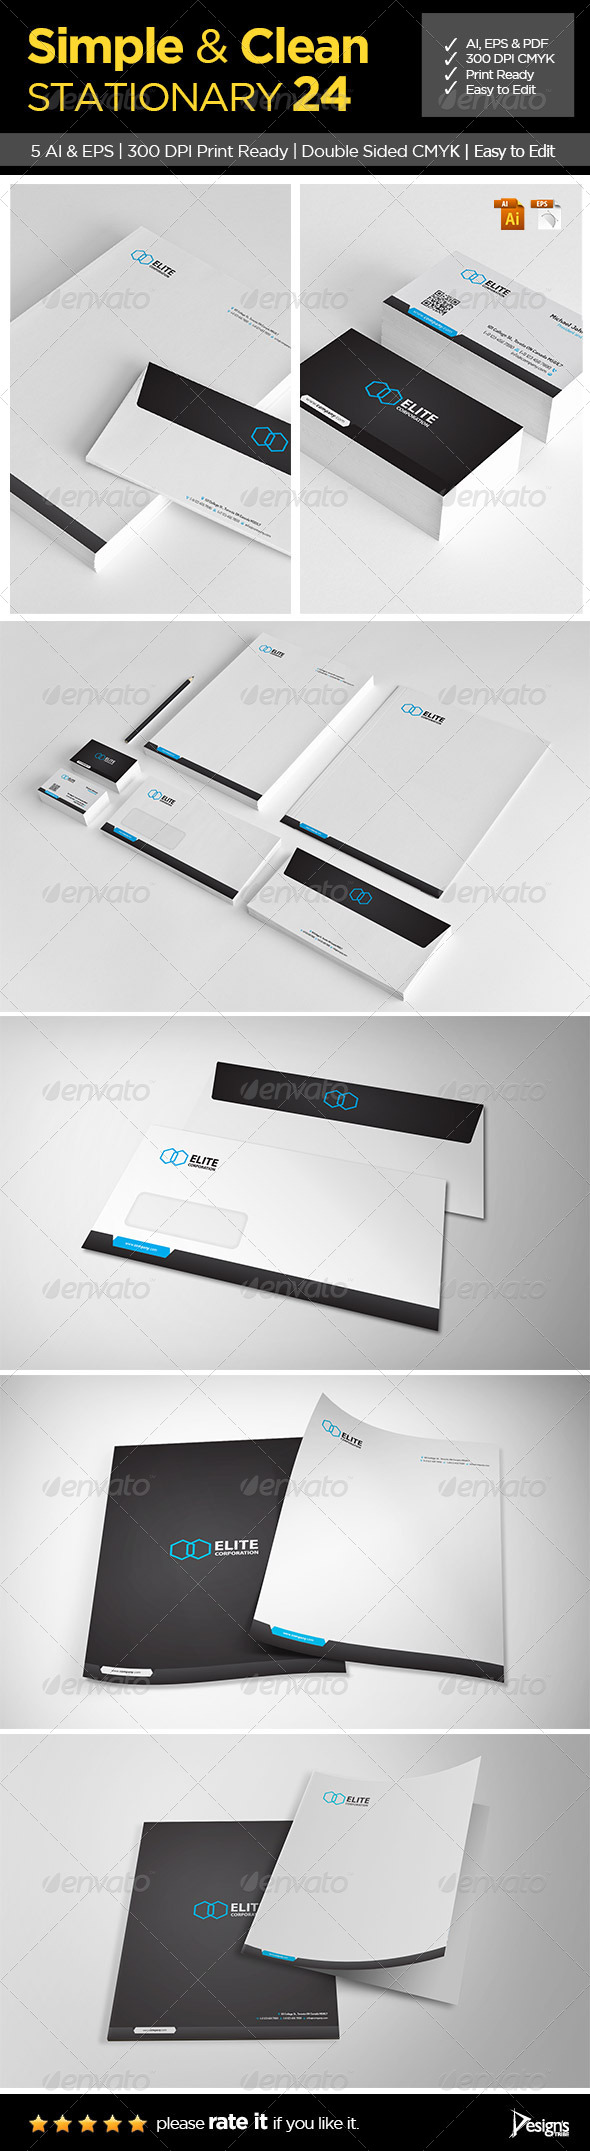 GraphicRiver Simple and Clean Stationary 24 6790028